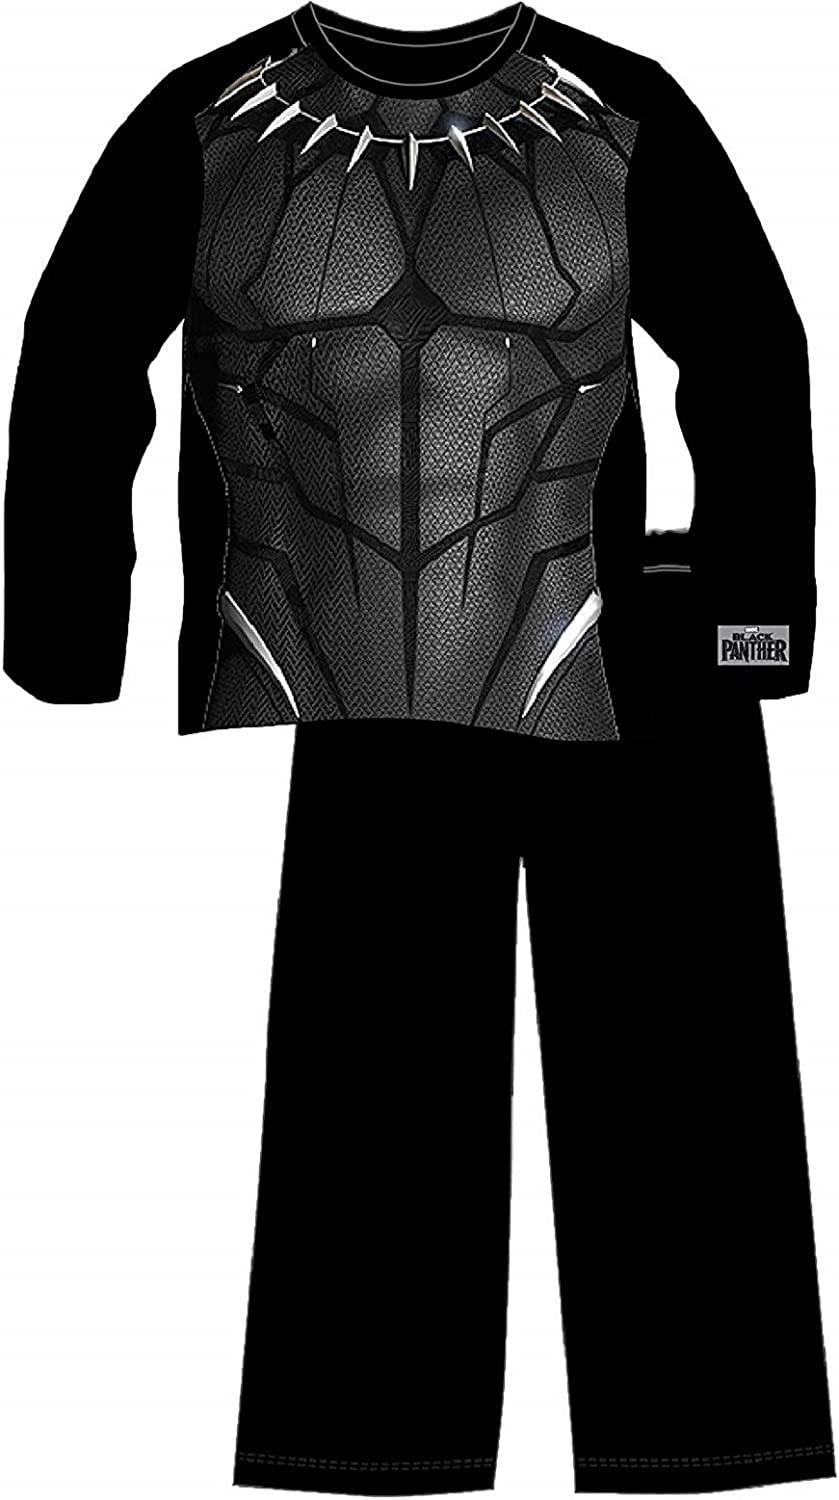 Marvel Black Panther Pyjamas for Boys Long Sleeve Clothing with Logo and Superhero Costume Printed Top Children Pyjama Set in Size Age 5-14 Wear As Kids Pjs Or Lounge Pants